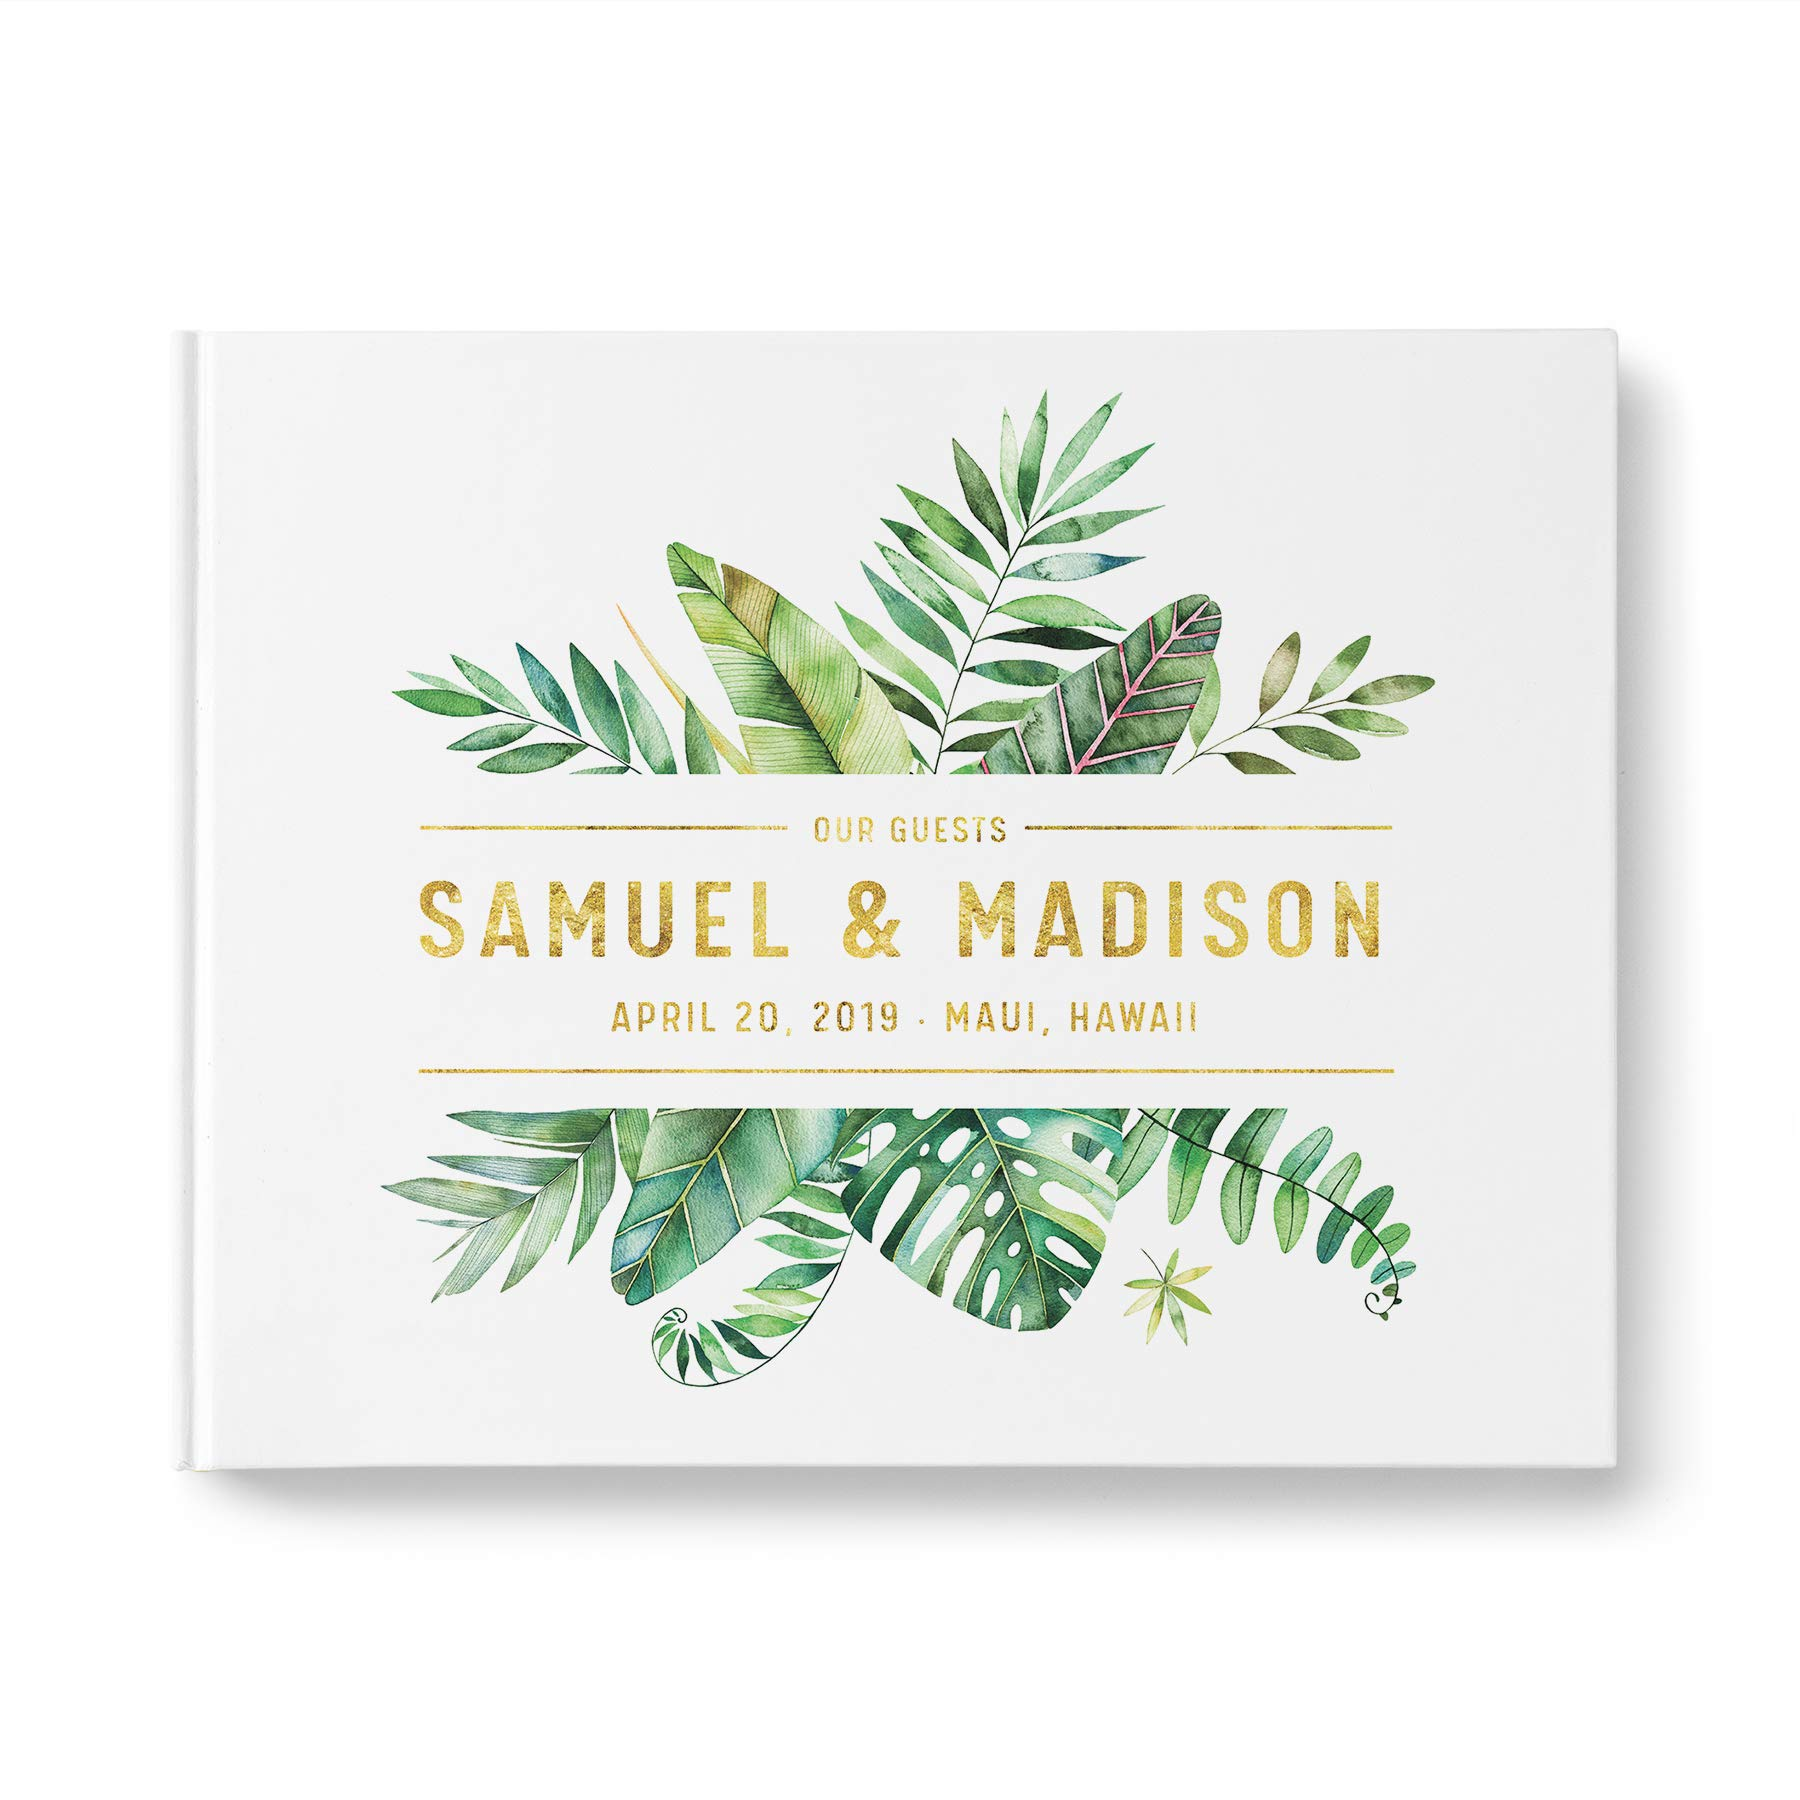 please + thanks Gold Foil Personalized Wedding Guest Book with Blank Pages, Casebound Hardcover, Landscape 10.9 x 8.75 inch, 40 Acid-Free Sheets (80 Pages Total)